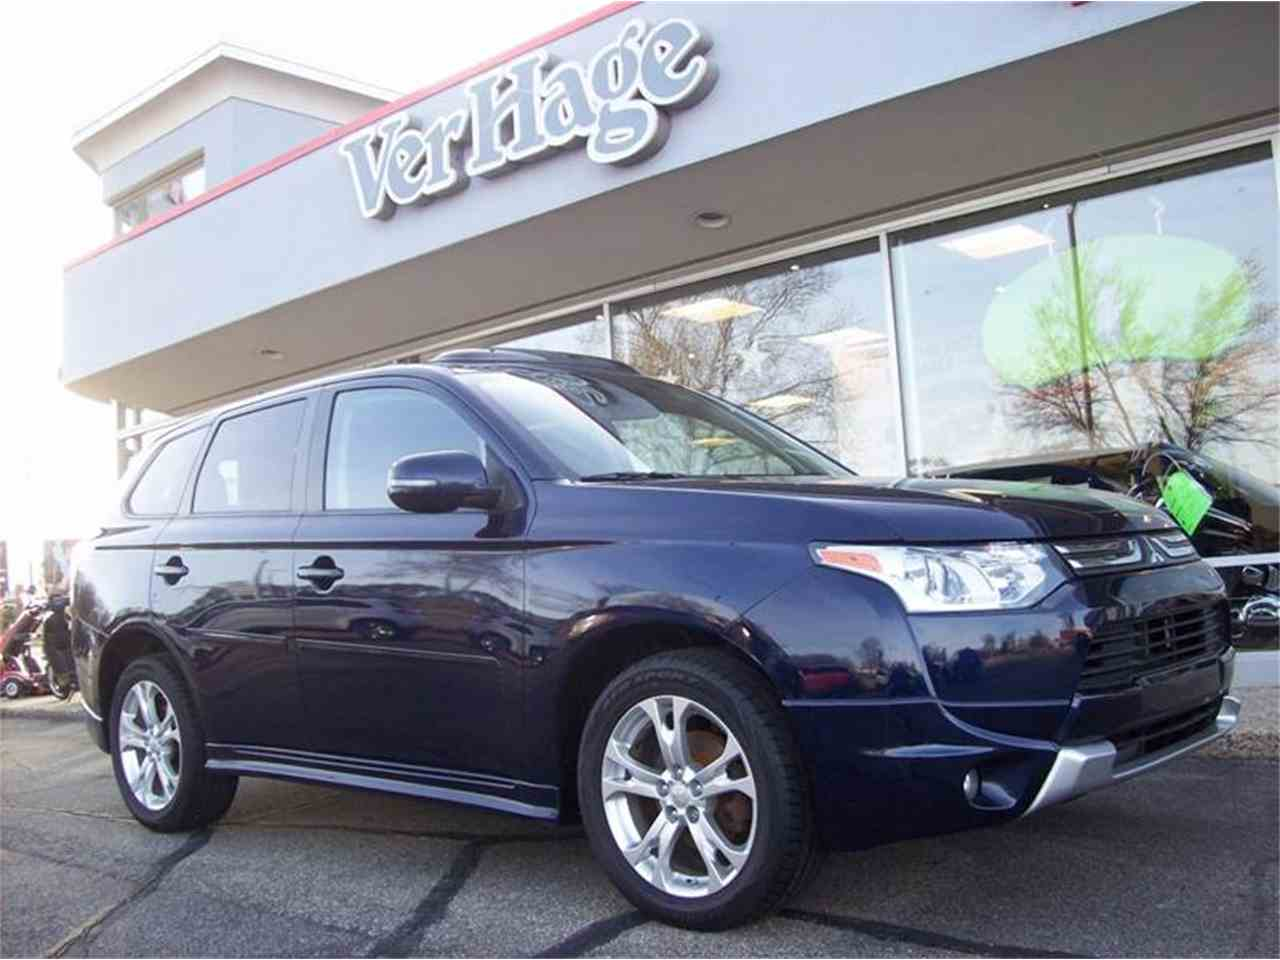 Large Picture of '14 Outlander - $17,495.00 - MB5J